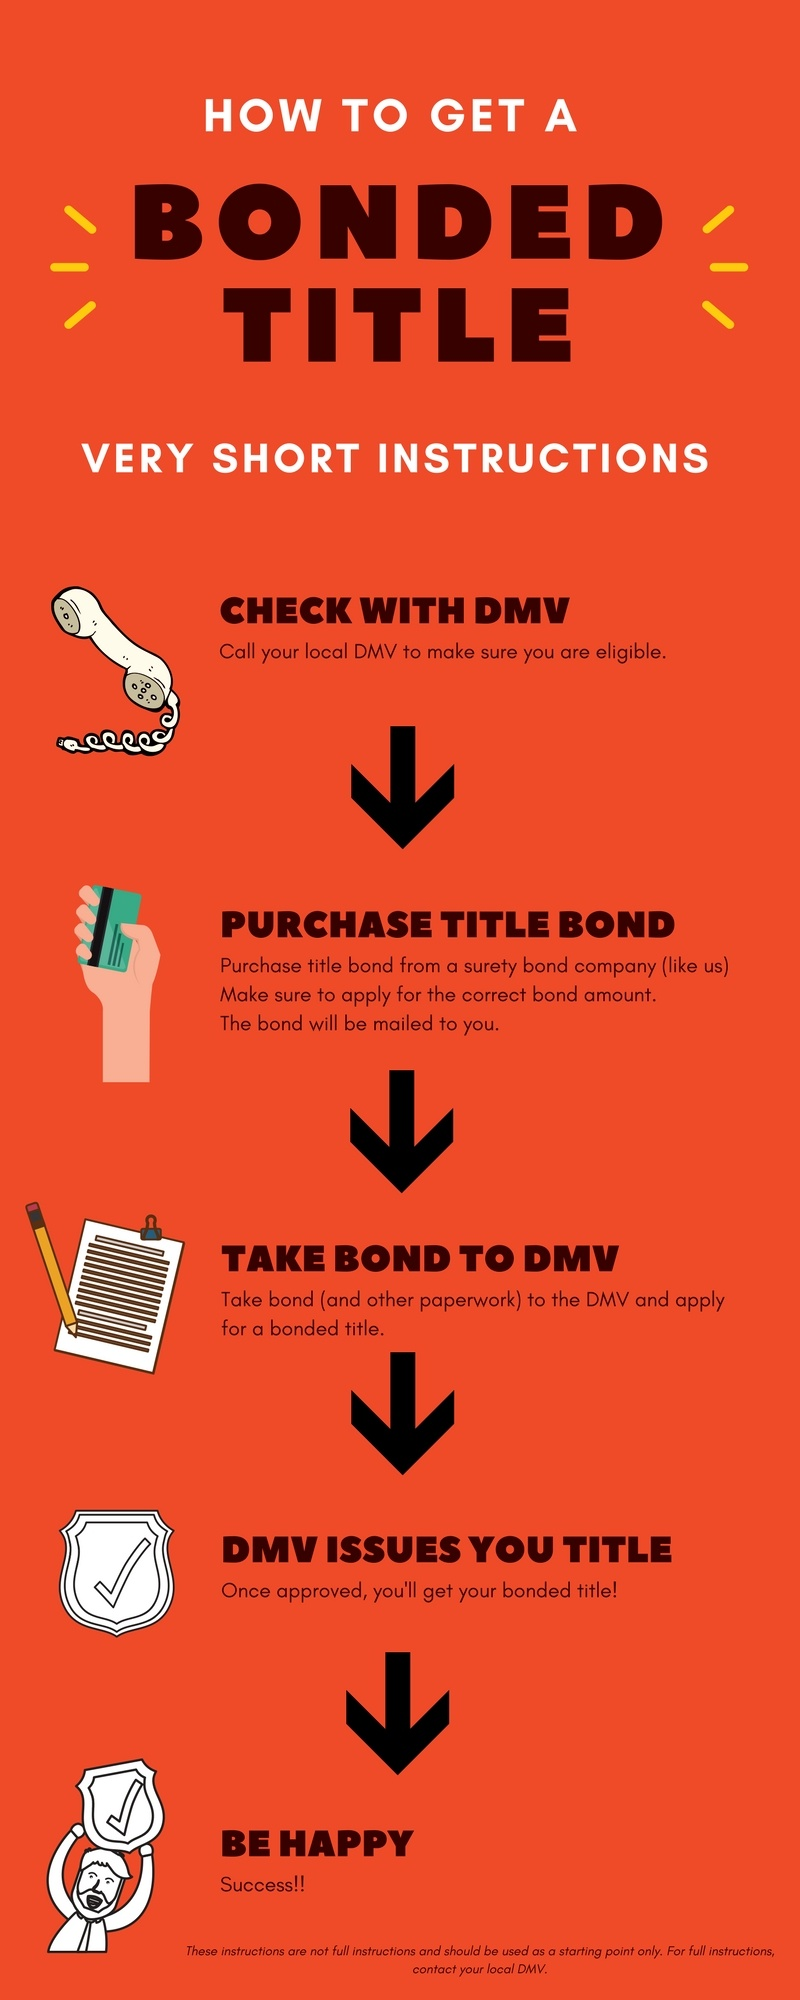 how to get bonded title